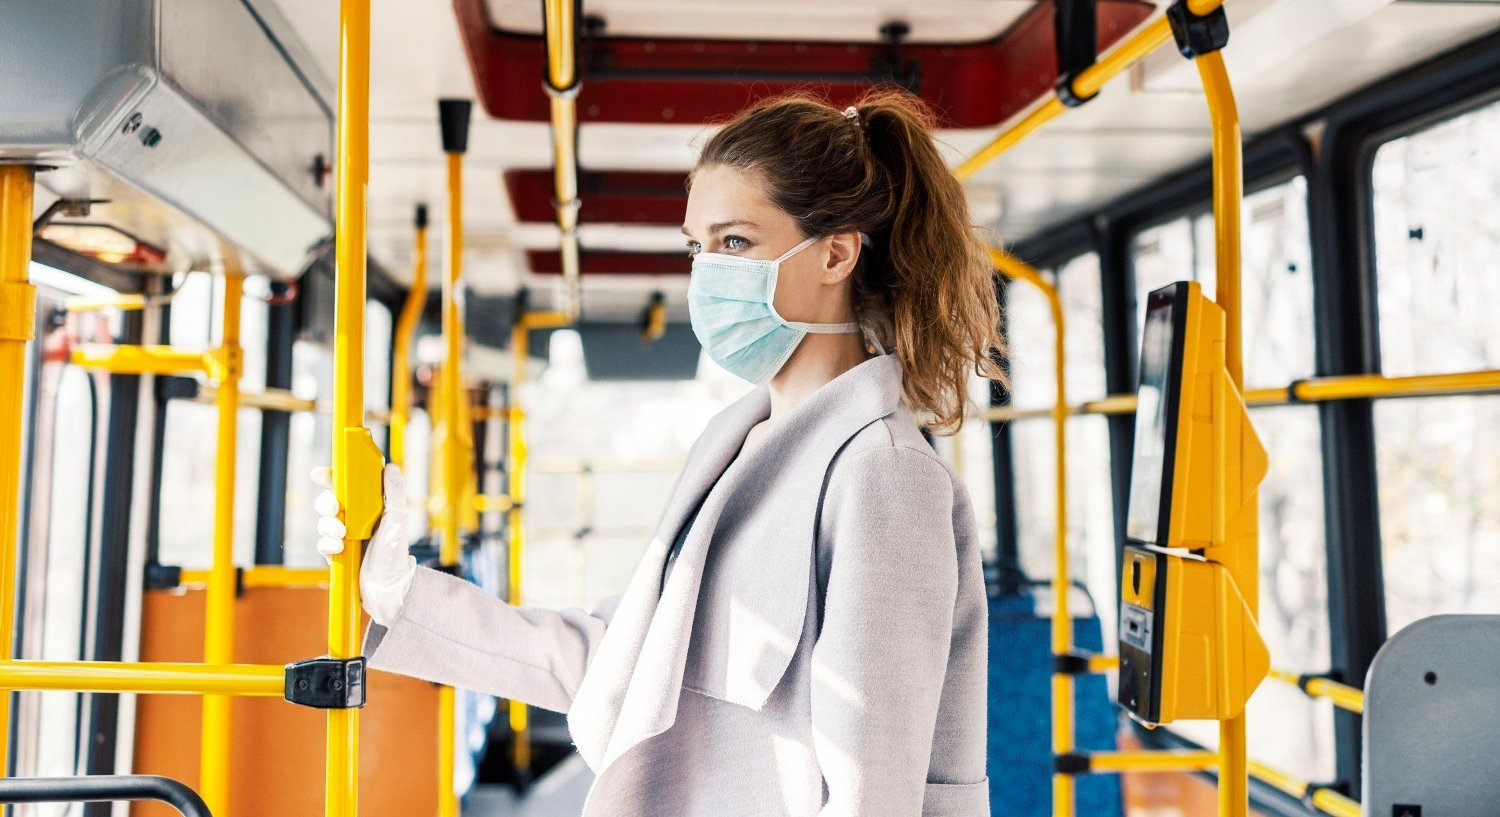 Virus protection in public transportation Woman wearing surgical protective mask going to work